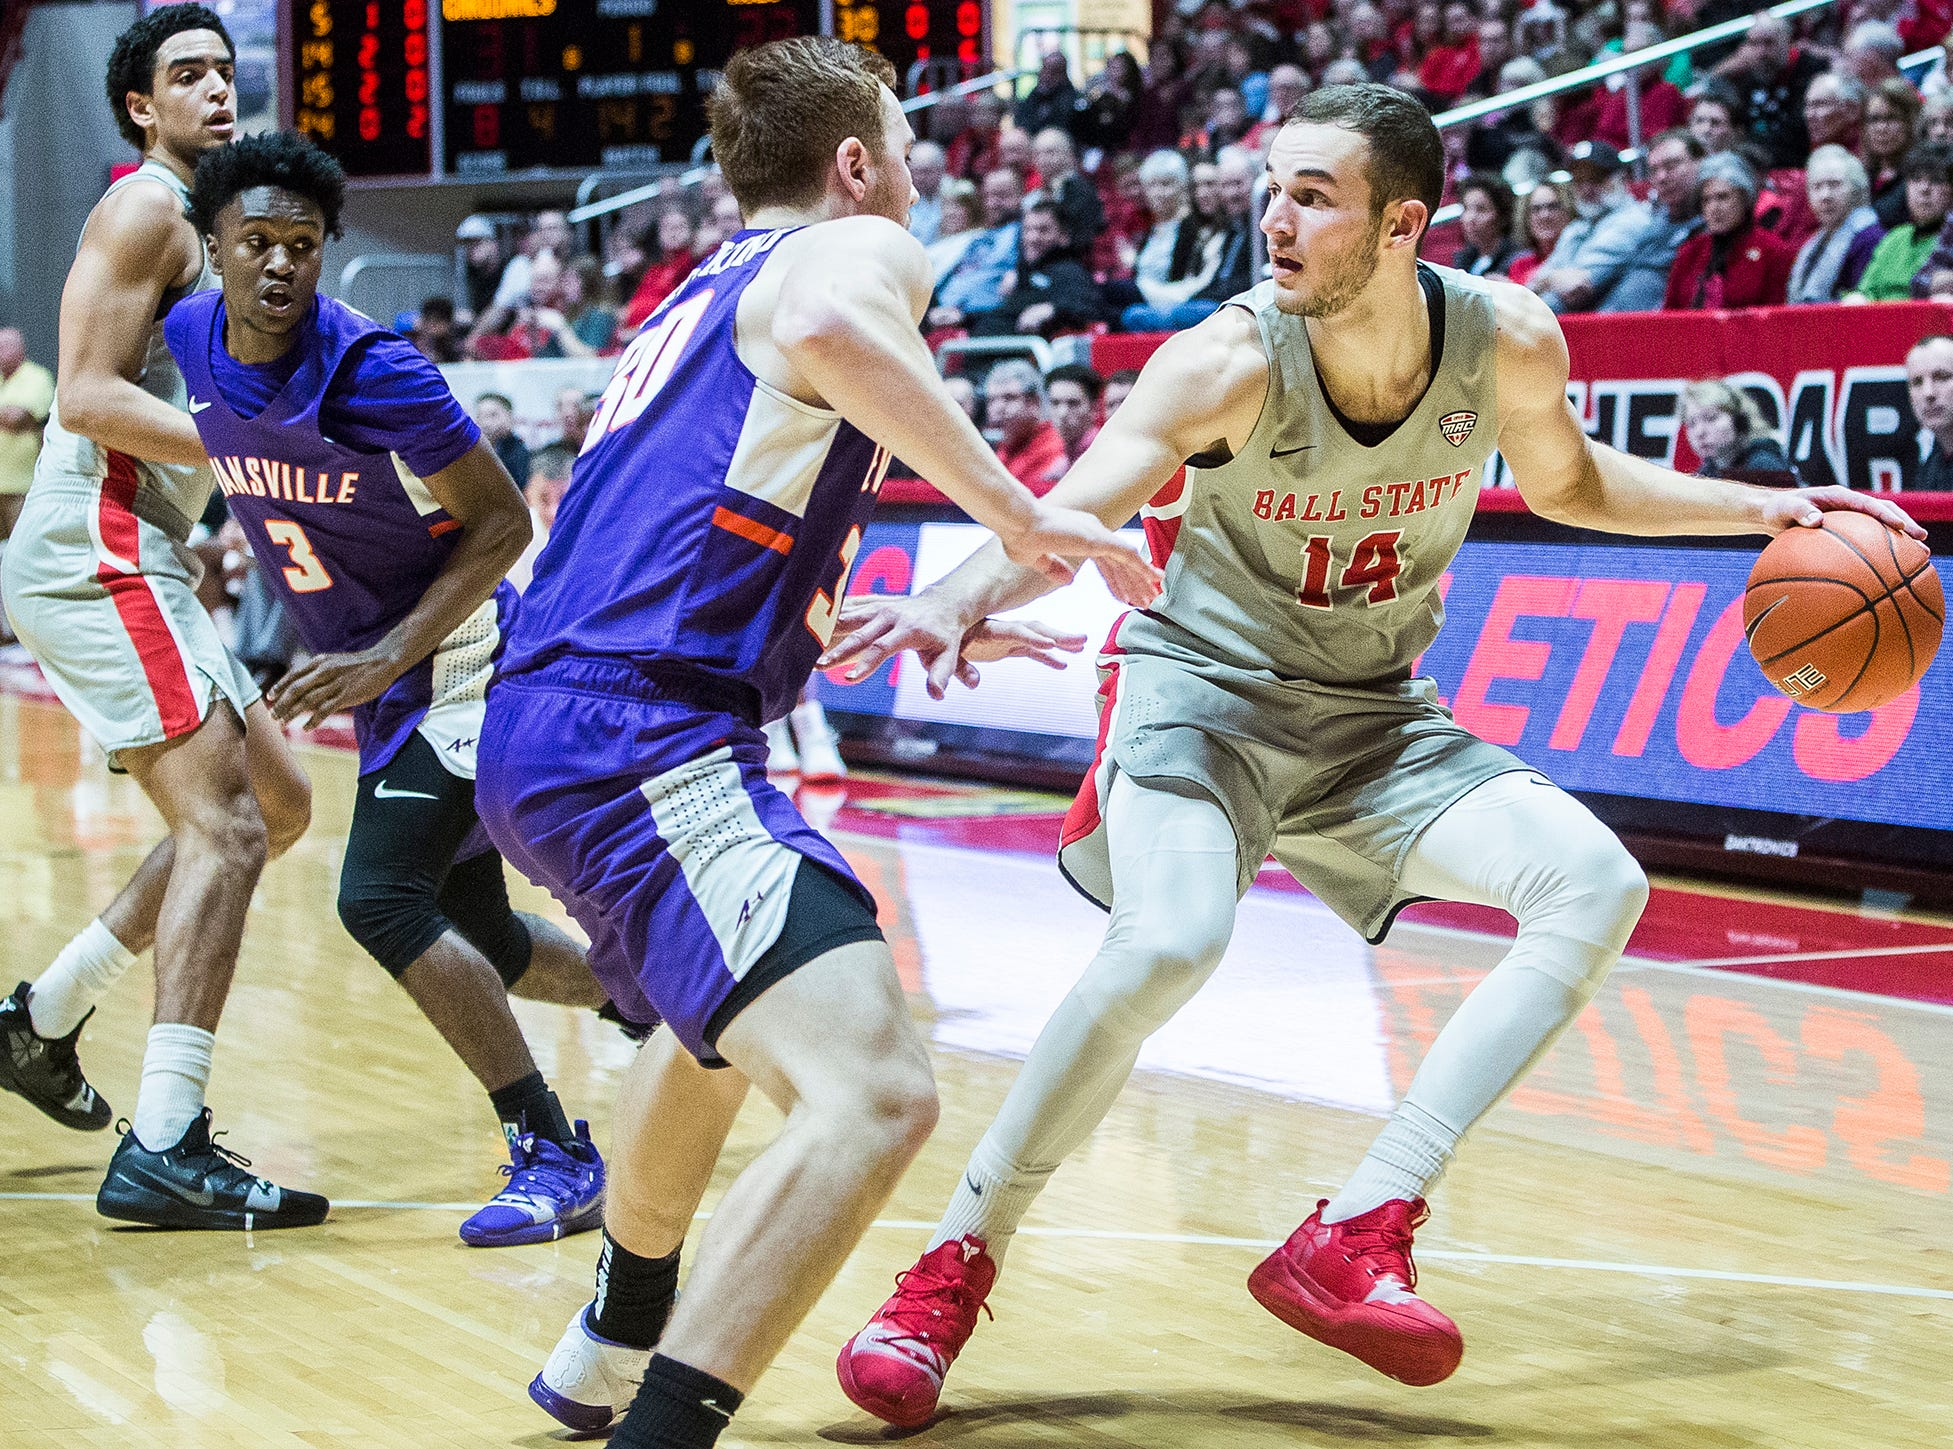 Ball State's Kyle Mallers looks for an opening in Evansville's defense during their game at Worthen Arena Saturday, Nov. 24, 2018.